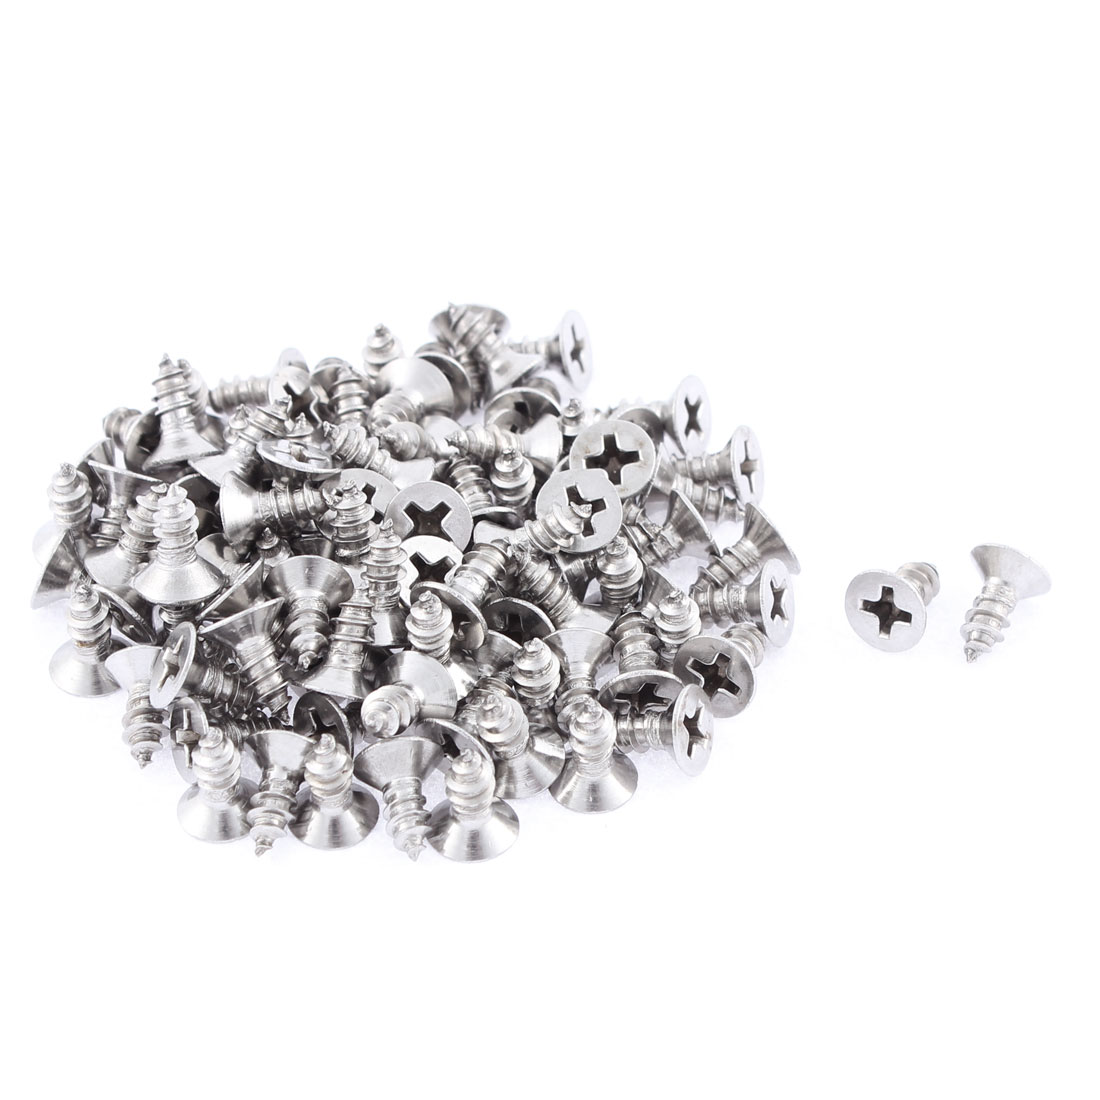 100 Pcs 3.9mmx9.5mm Stainless Steel Phillips Flat Head Sheet Self Tapping Screws